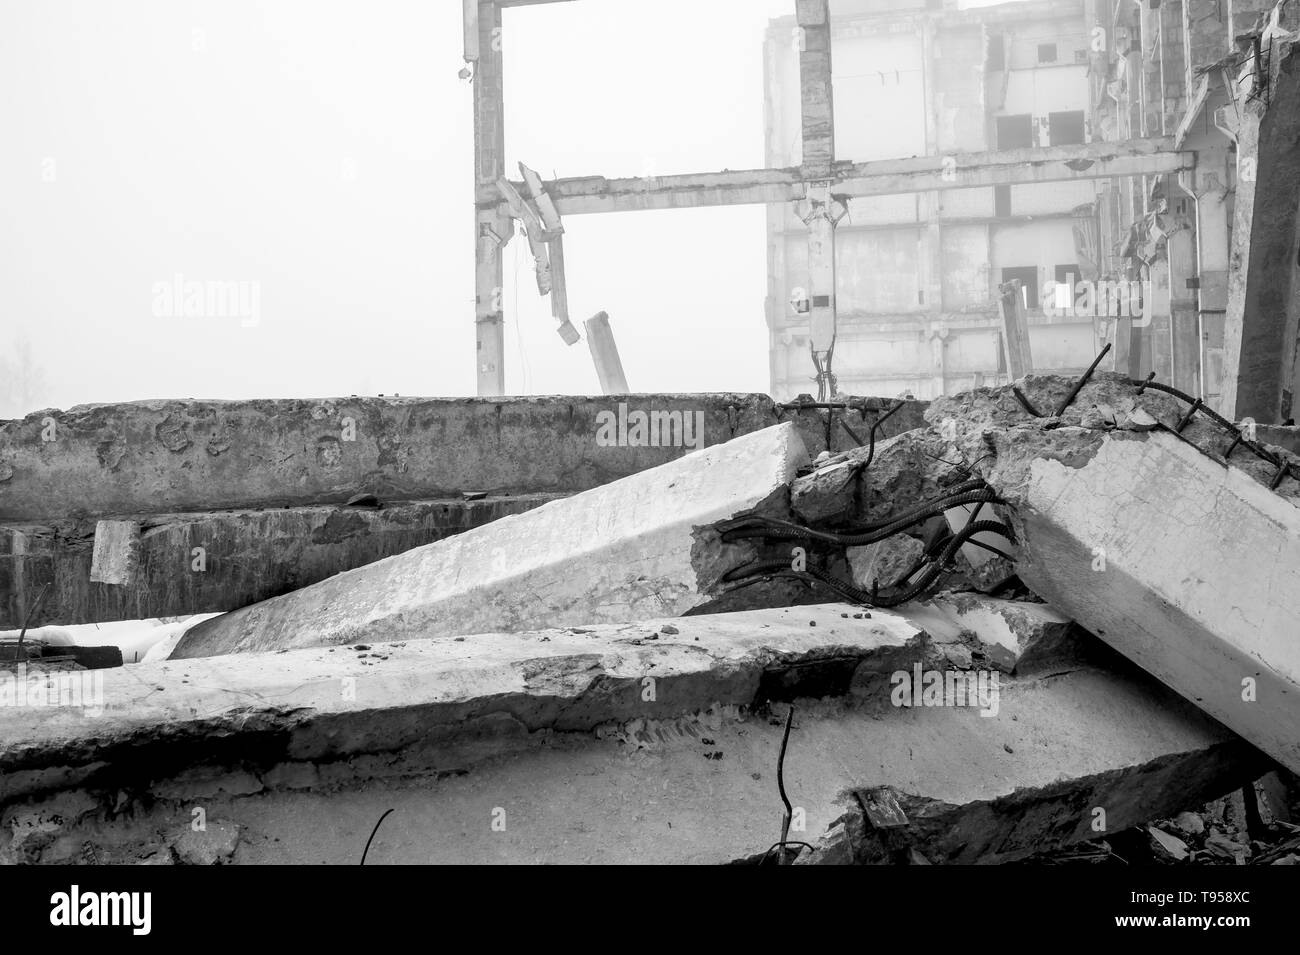 The destroyed big concrete building in a foggy haze. The frame of the building structure with huge piles lying in the foreground. Background. Black an - Stock Image